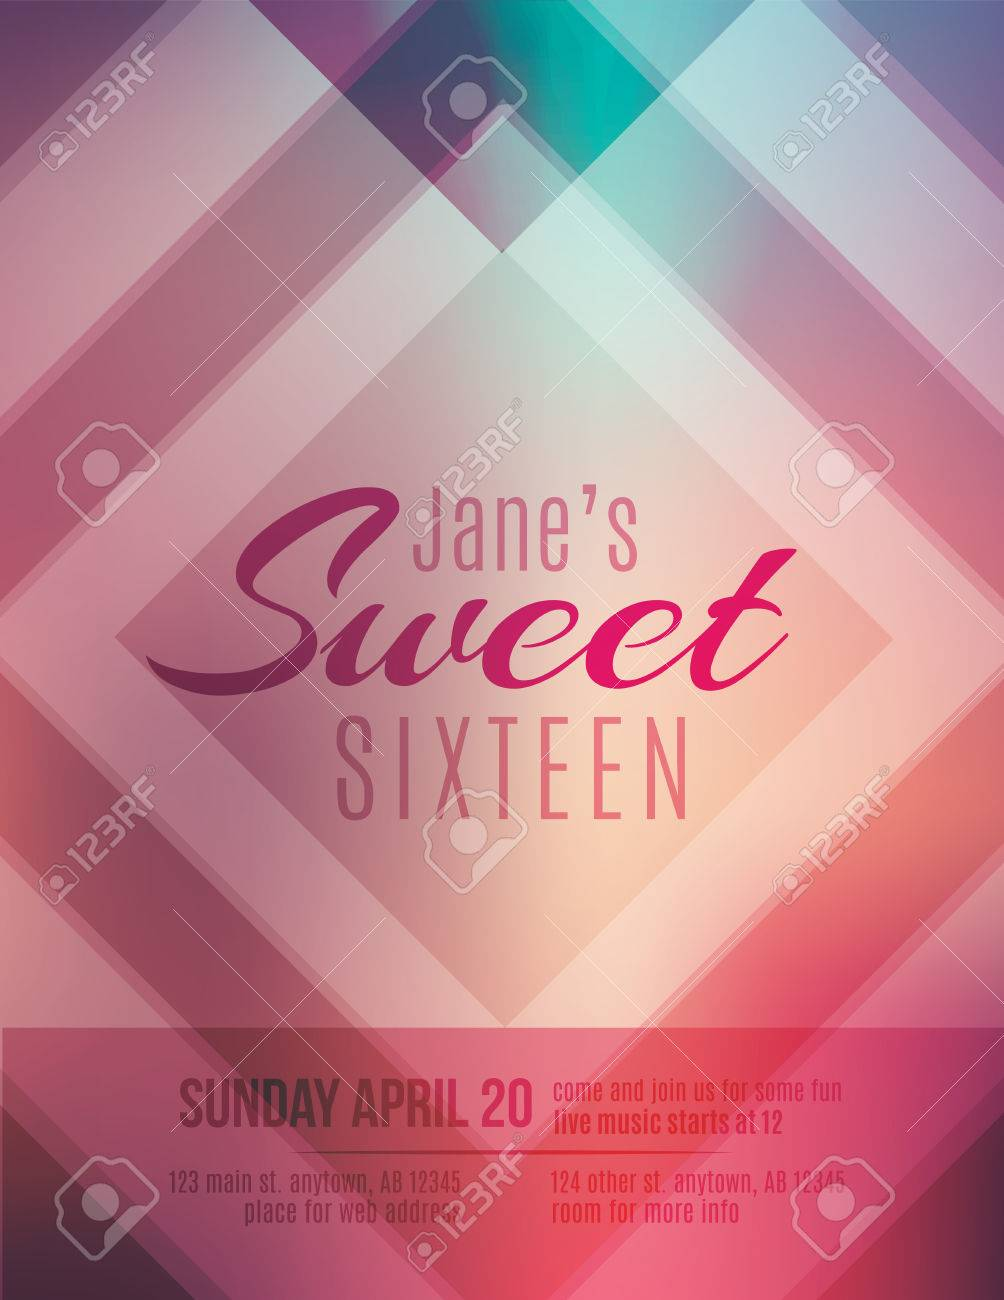 Modern And Classy Sweet Sixteen Birthday Party Invitation Template Stock Vector